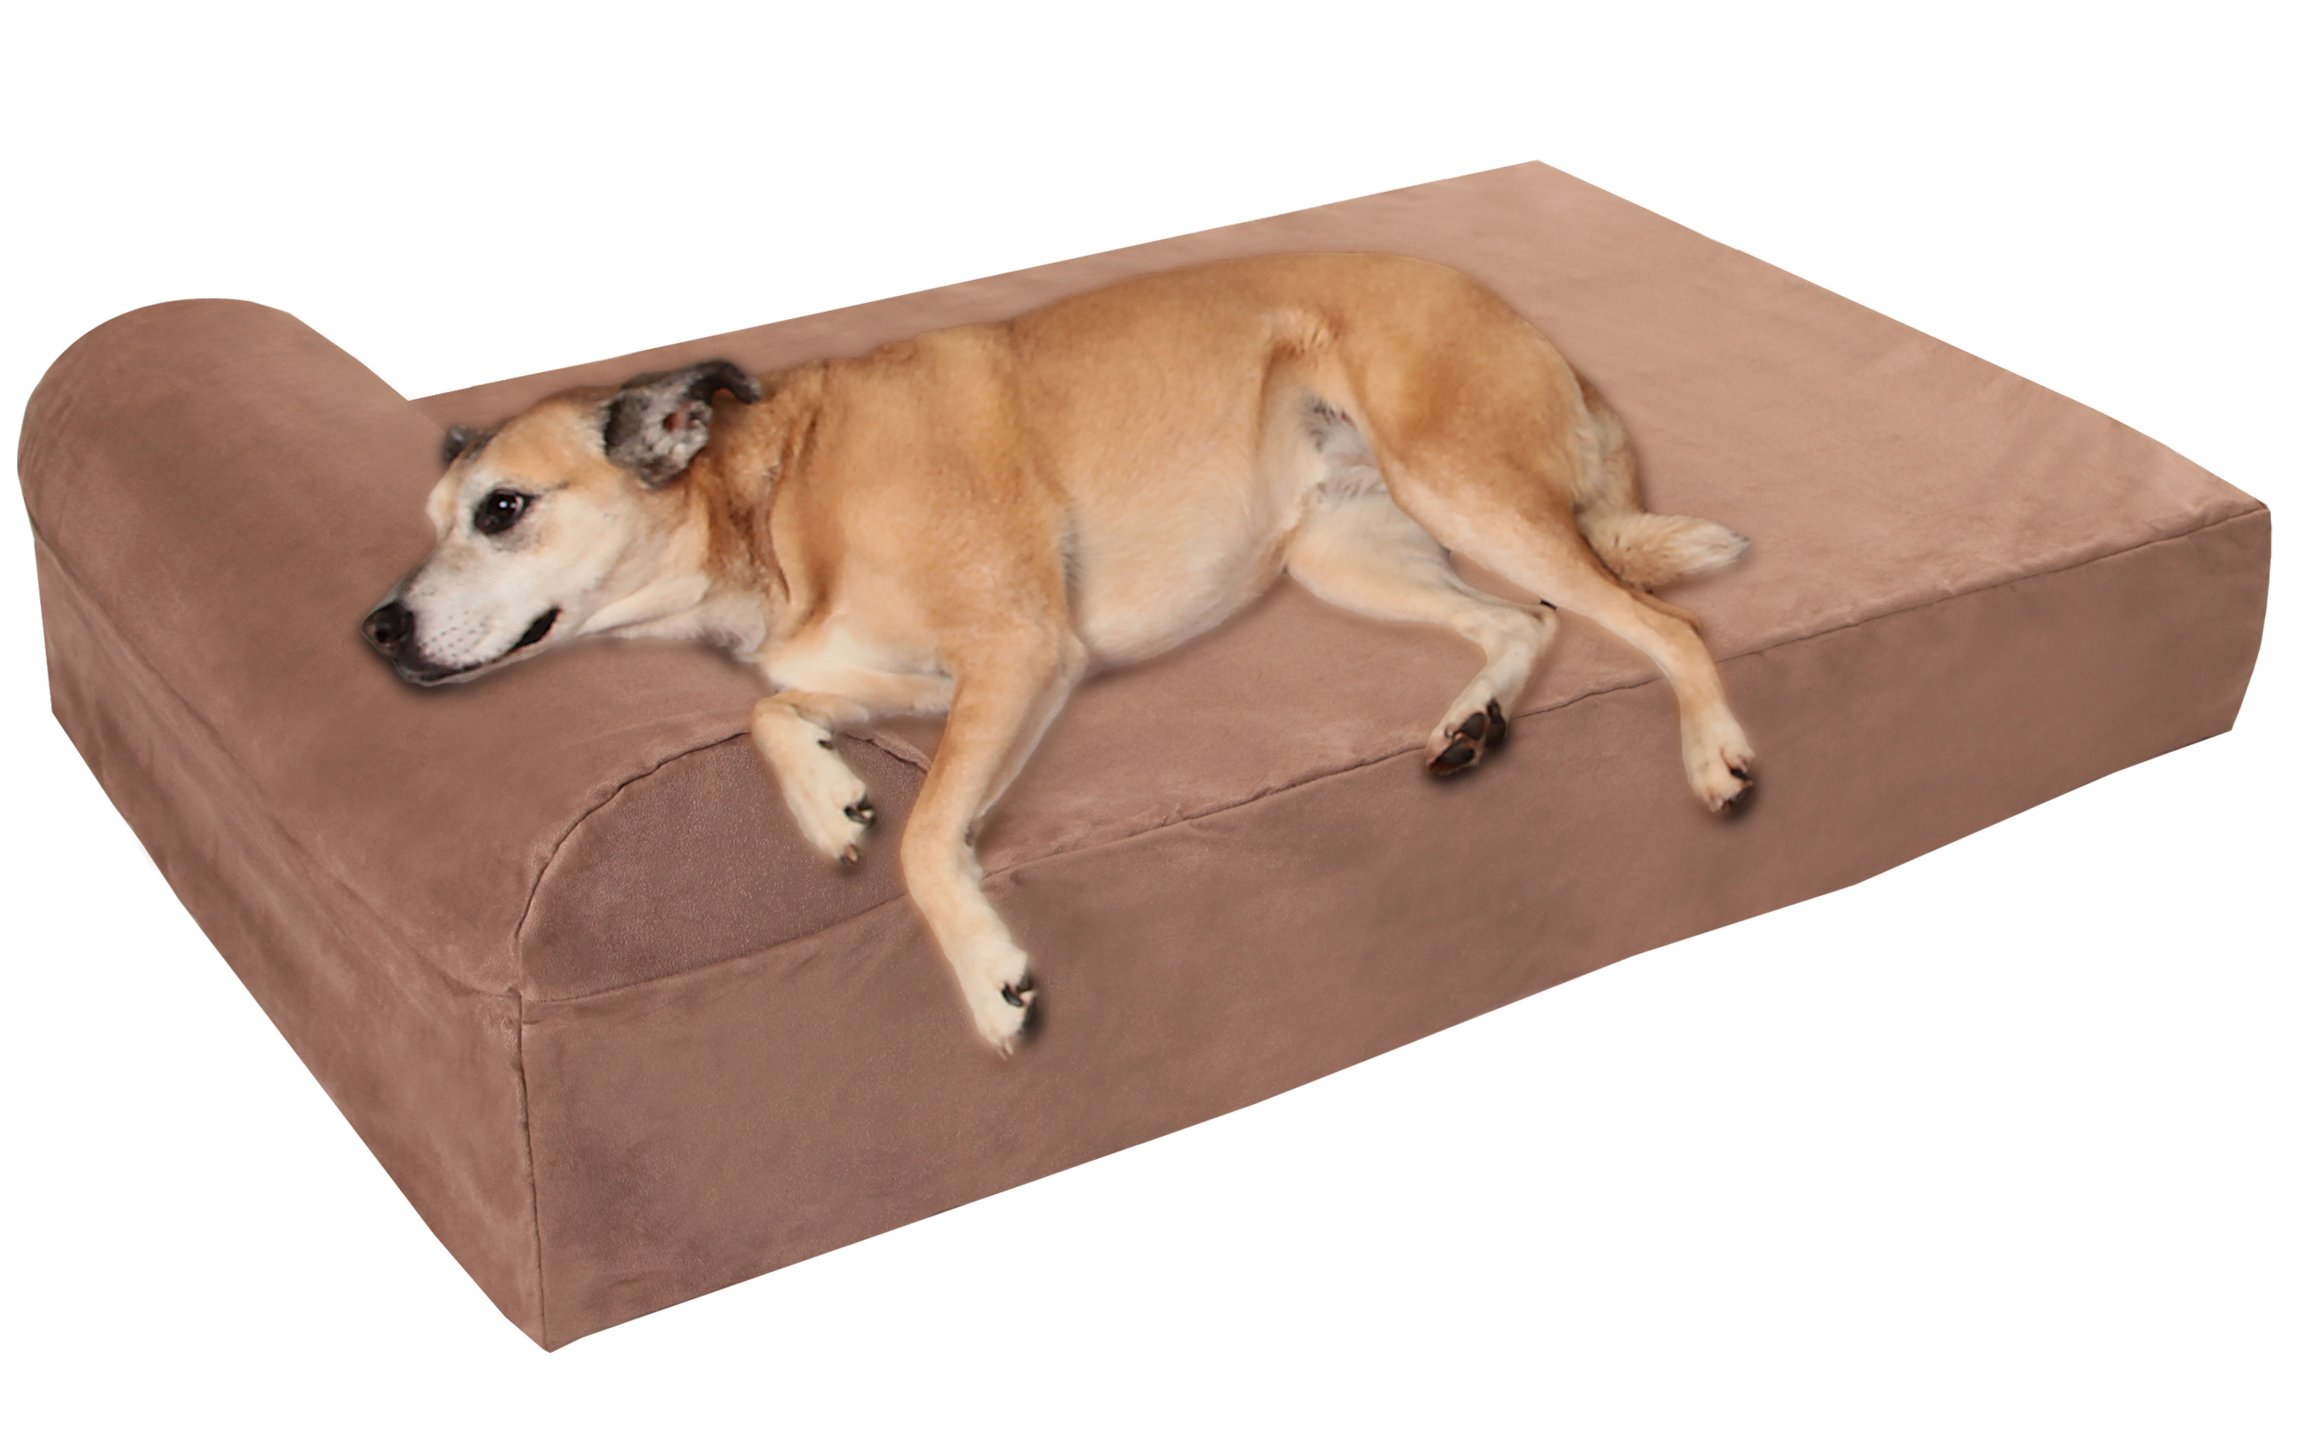 Pet beds for dogs and cats skarro be fun live life for Big dog furniture